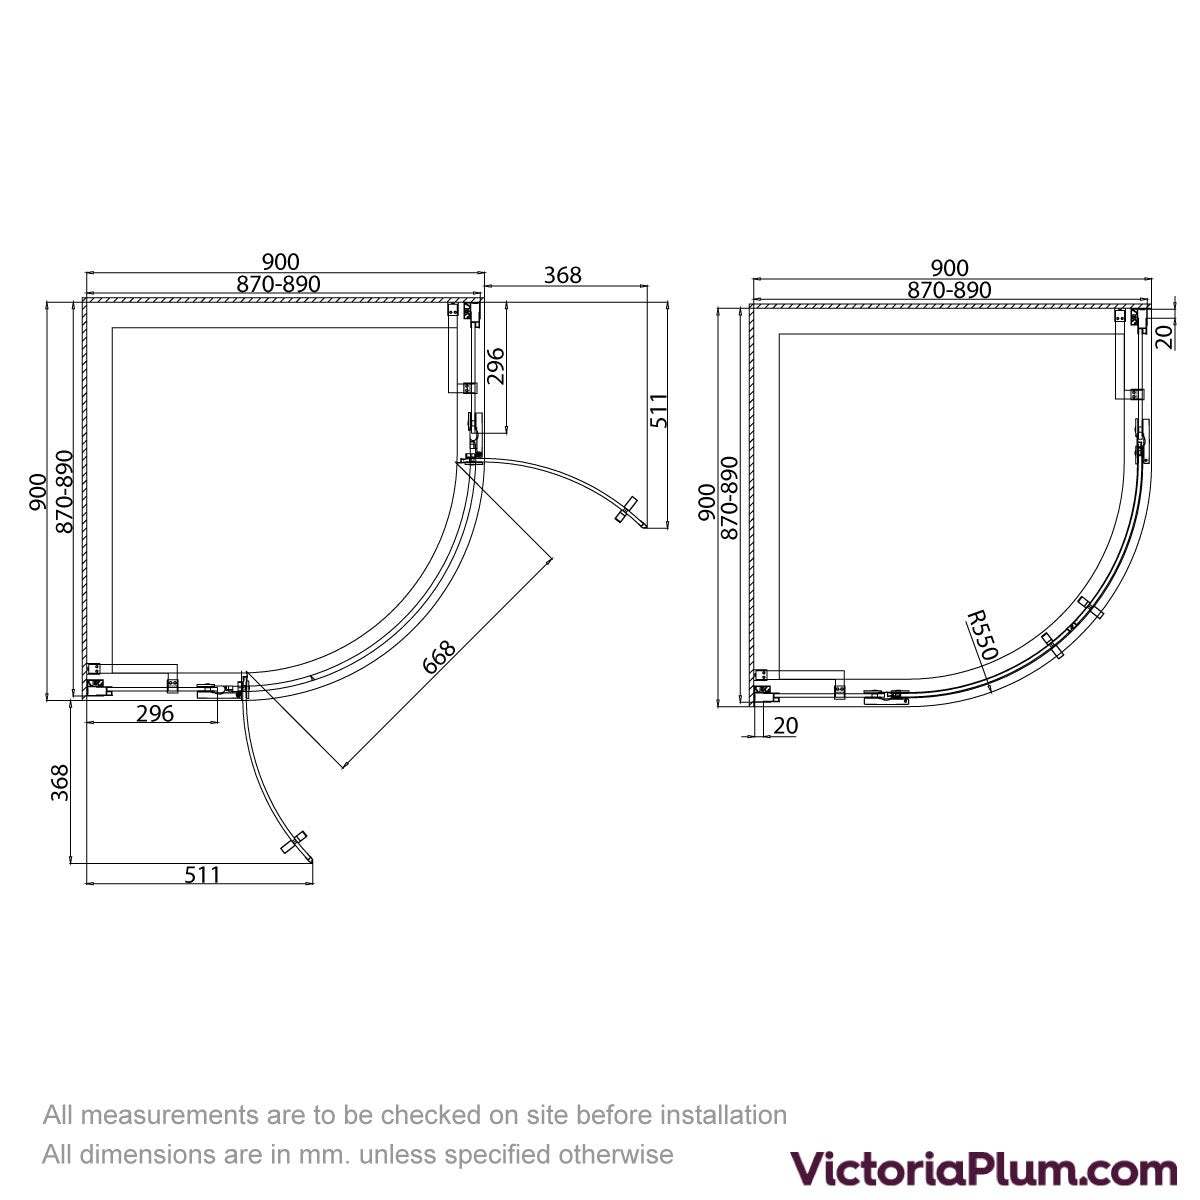 Dimensions for Mode Cooper black hinged quadrant shower enclosure 900x900